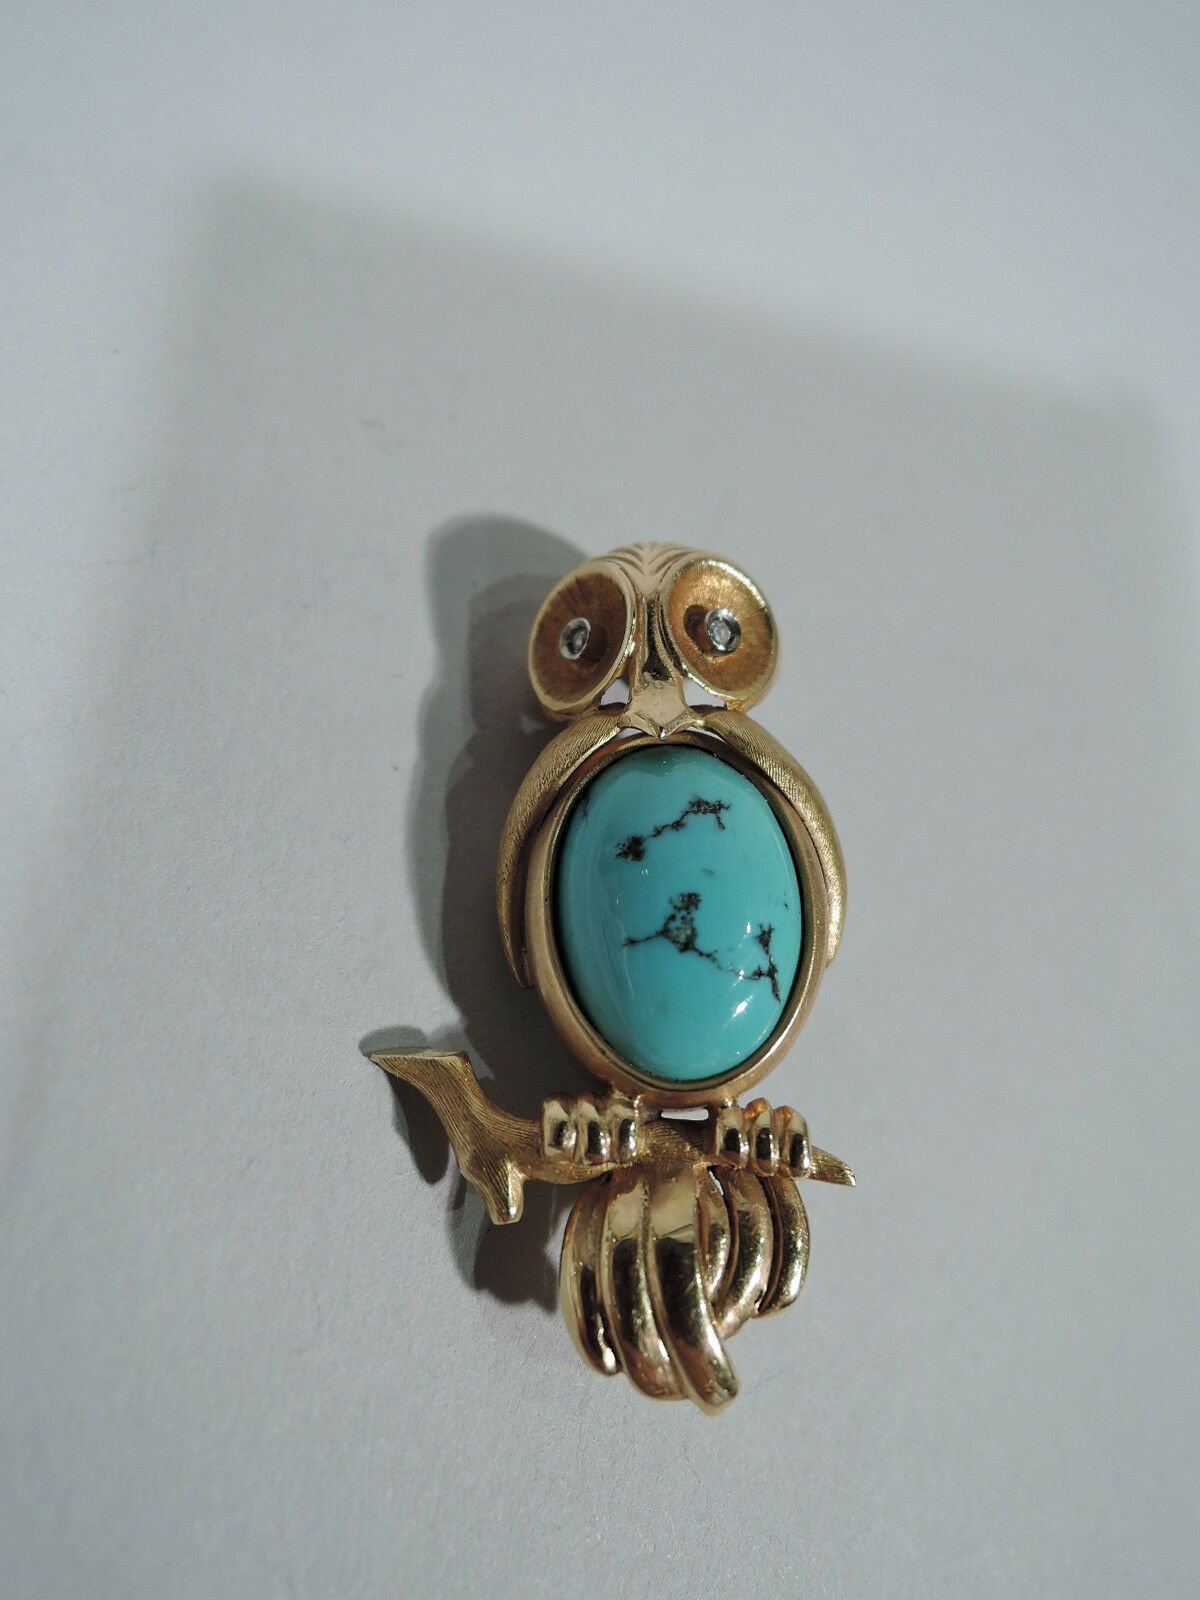 Antique Brooch - Art Deco Modern Wise Owl Pin - American 18K gold & Turquoise